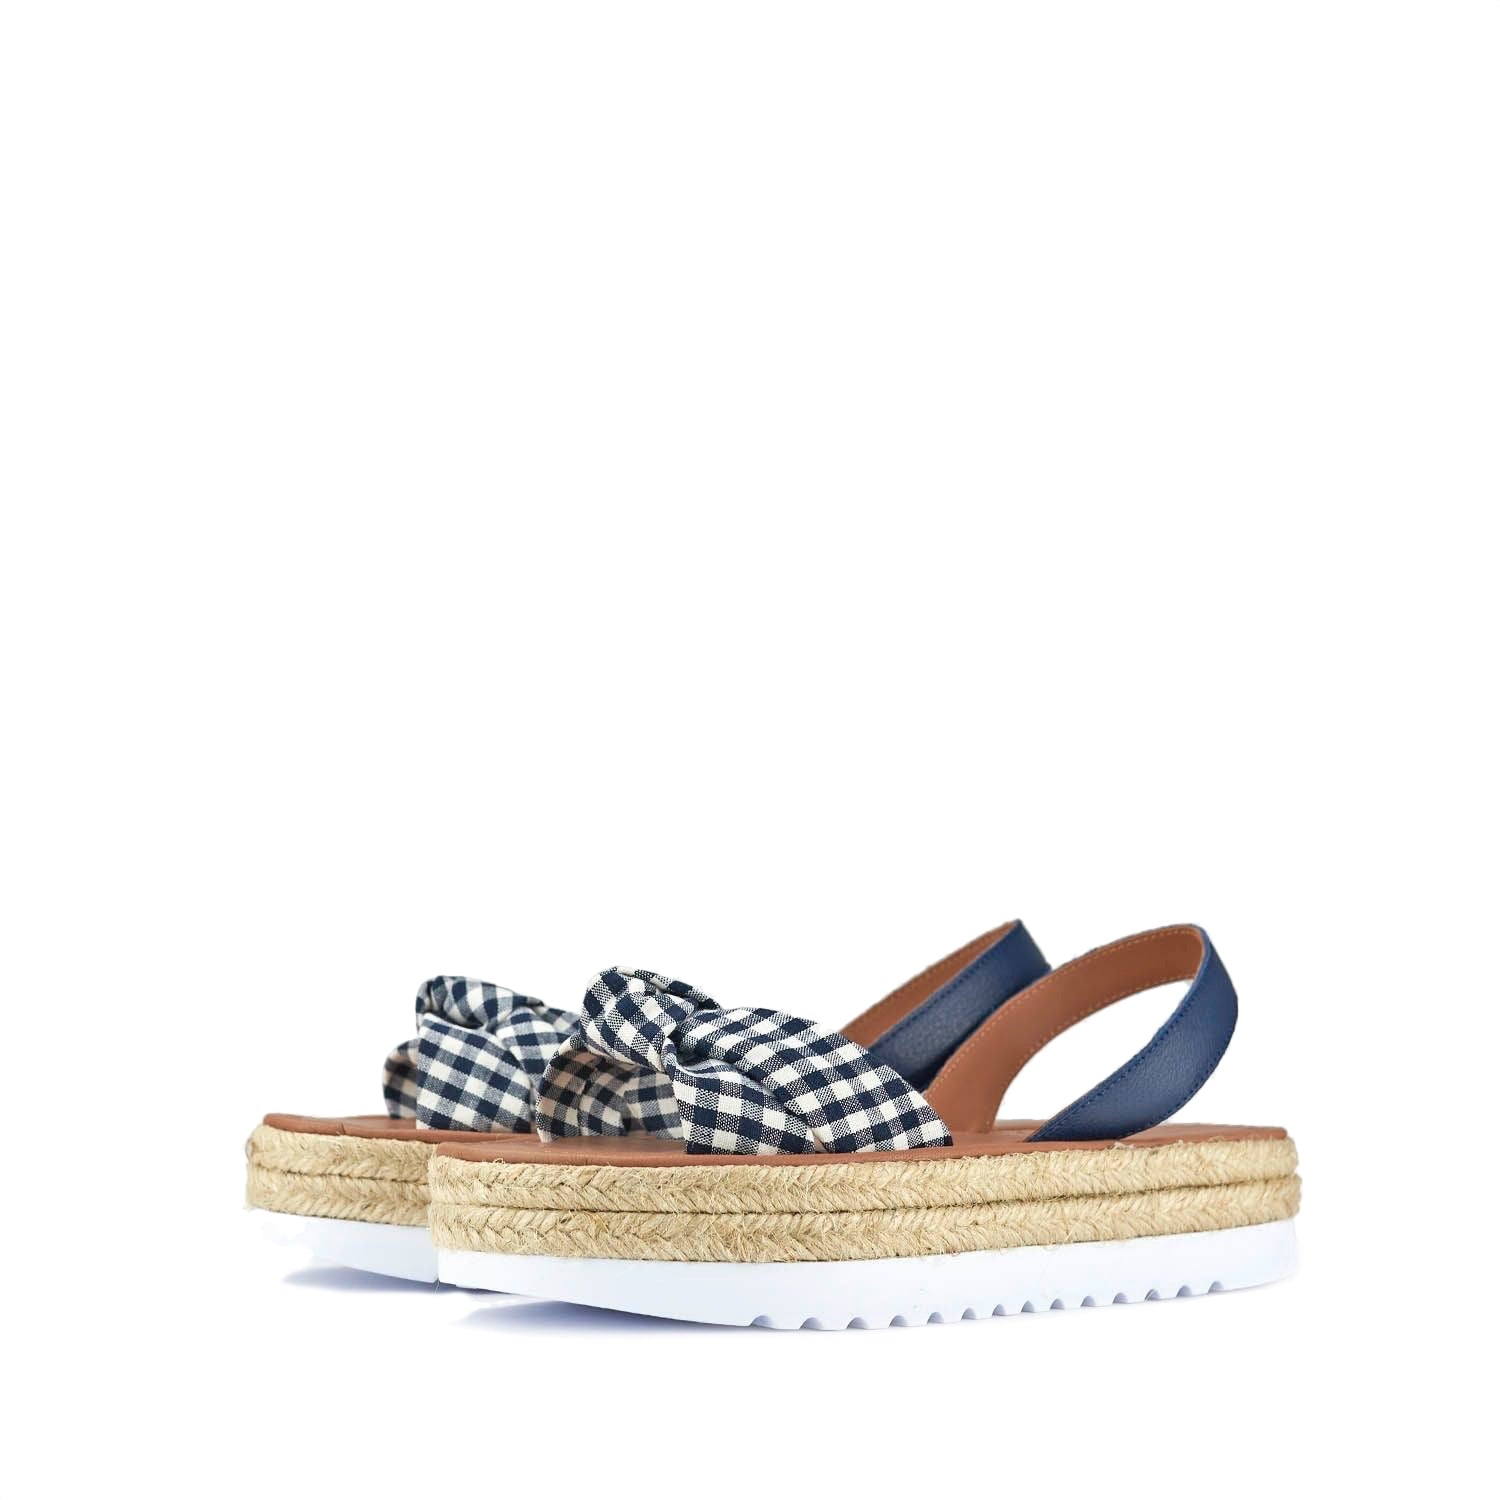 POPA Pampas White and Blue Gingham Avarca Sandals